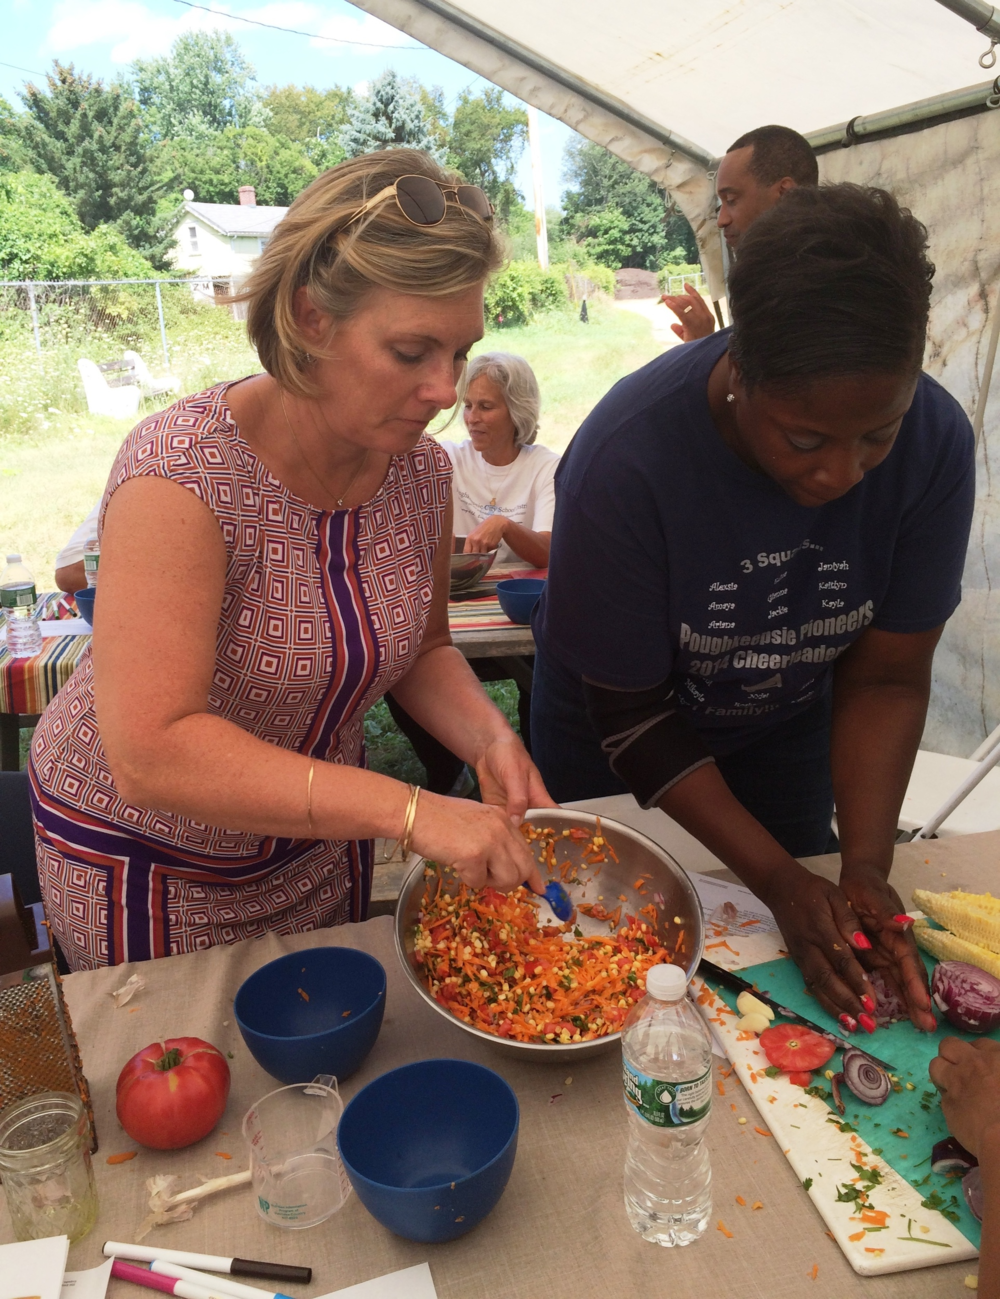 Poughkeepsie City School District principals, Andrea Moriarty and Nadine Dargan, compete against their colleagues to prepare delicious vegetable-based snacks at a PFP workshop on nutrition.